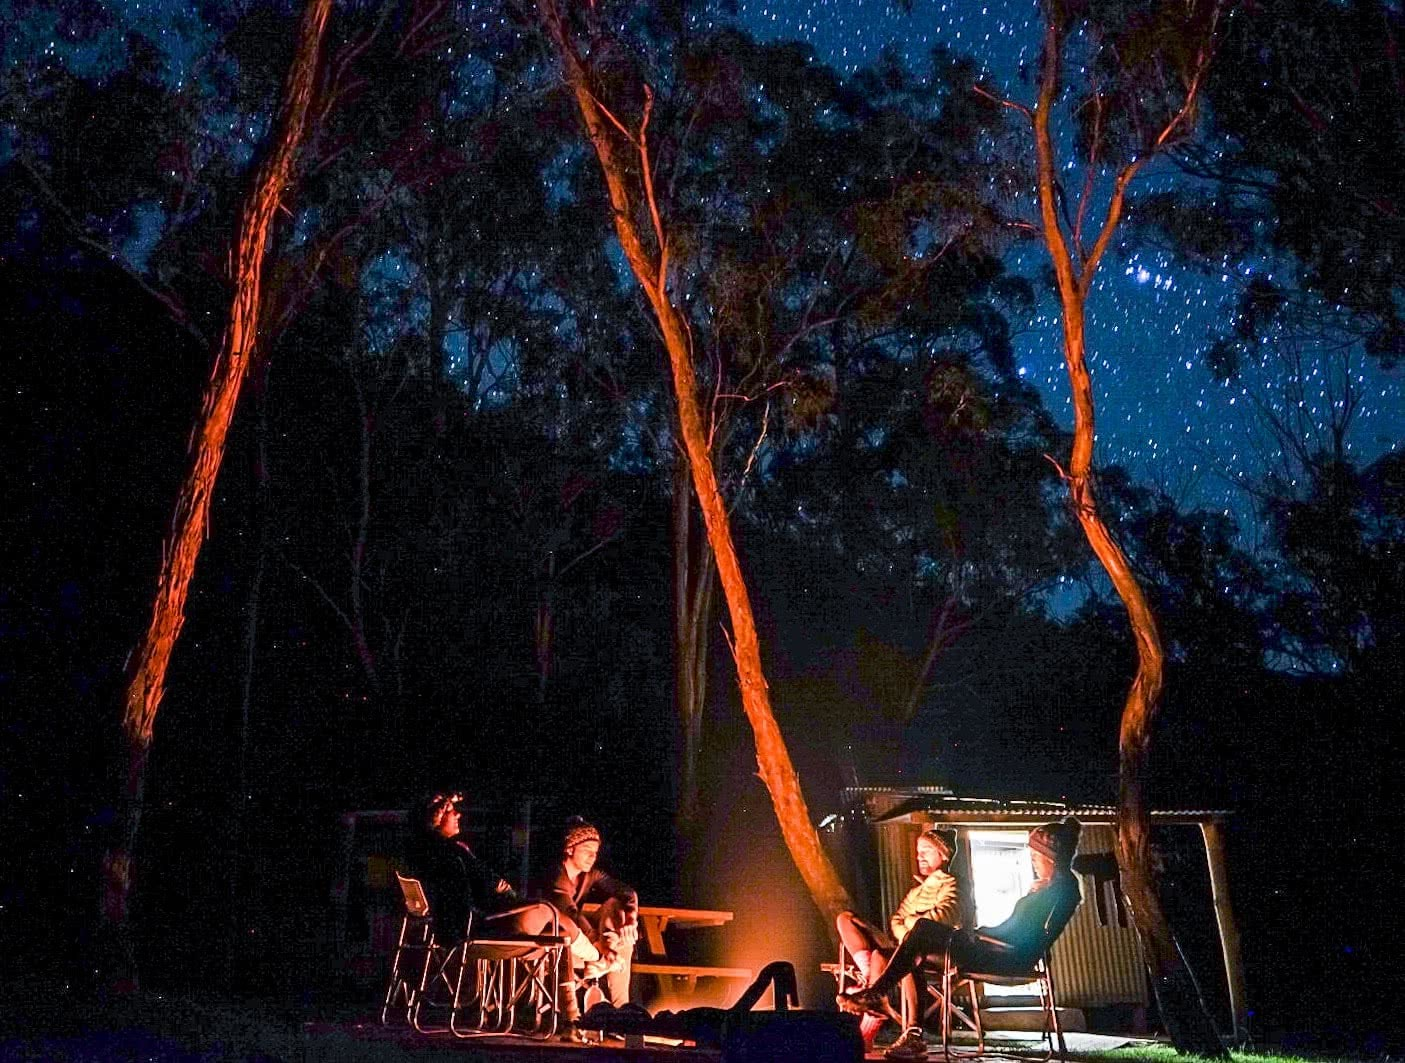 Green Gully Track, Oxley Wild Rivers National Park, NSW, multi-day hike, hut to hut, campsite, campfire, stars, night, astrophotography